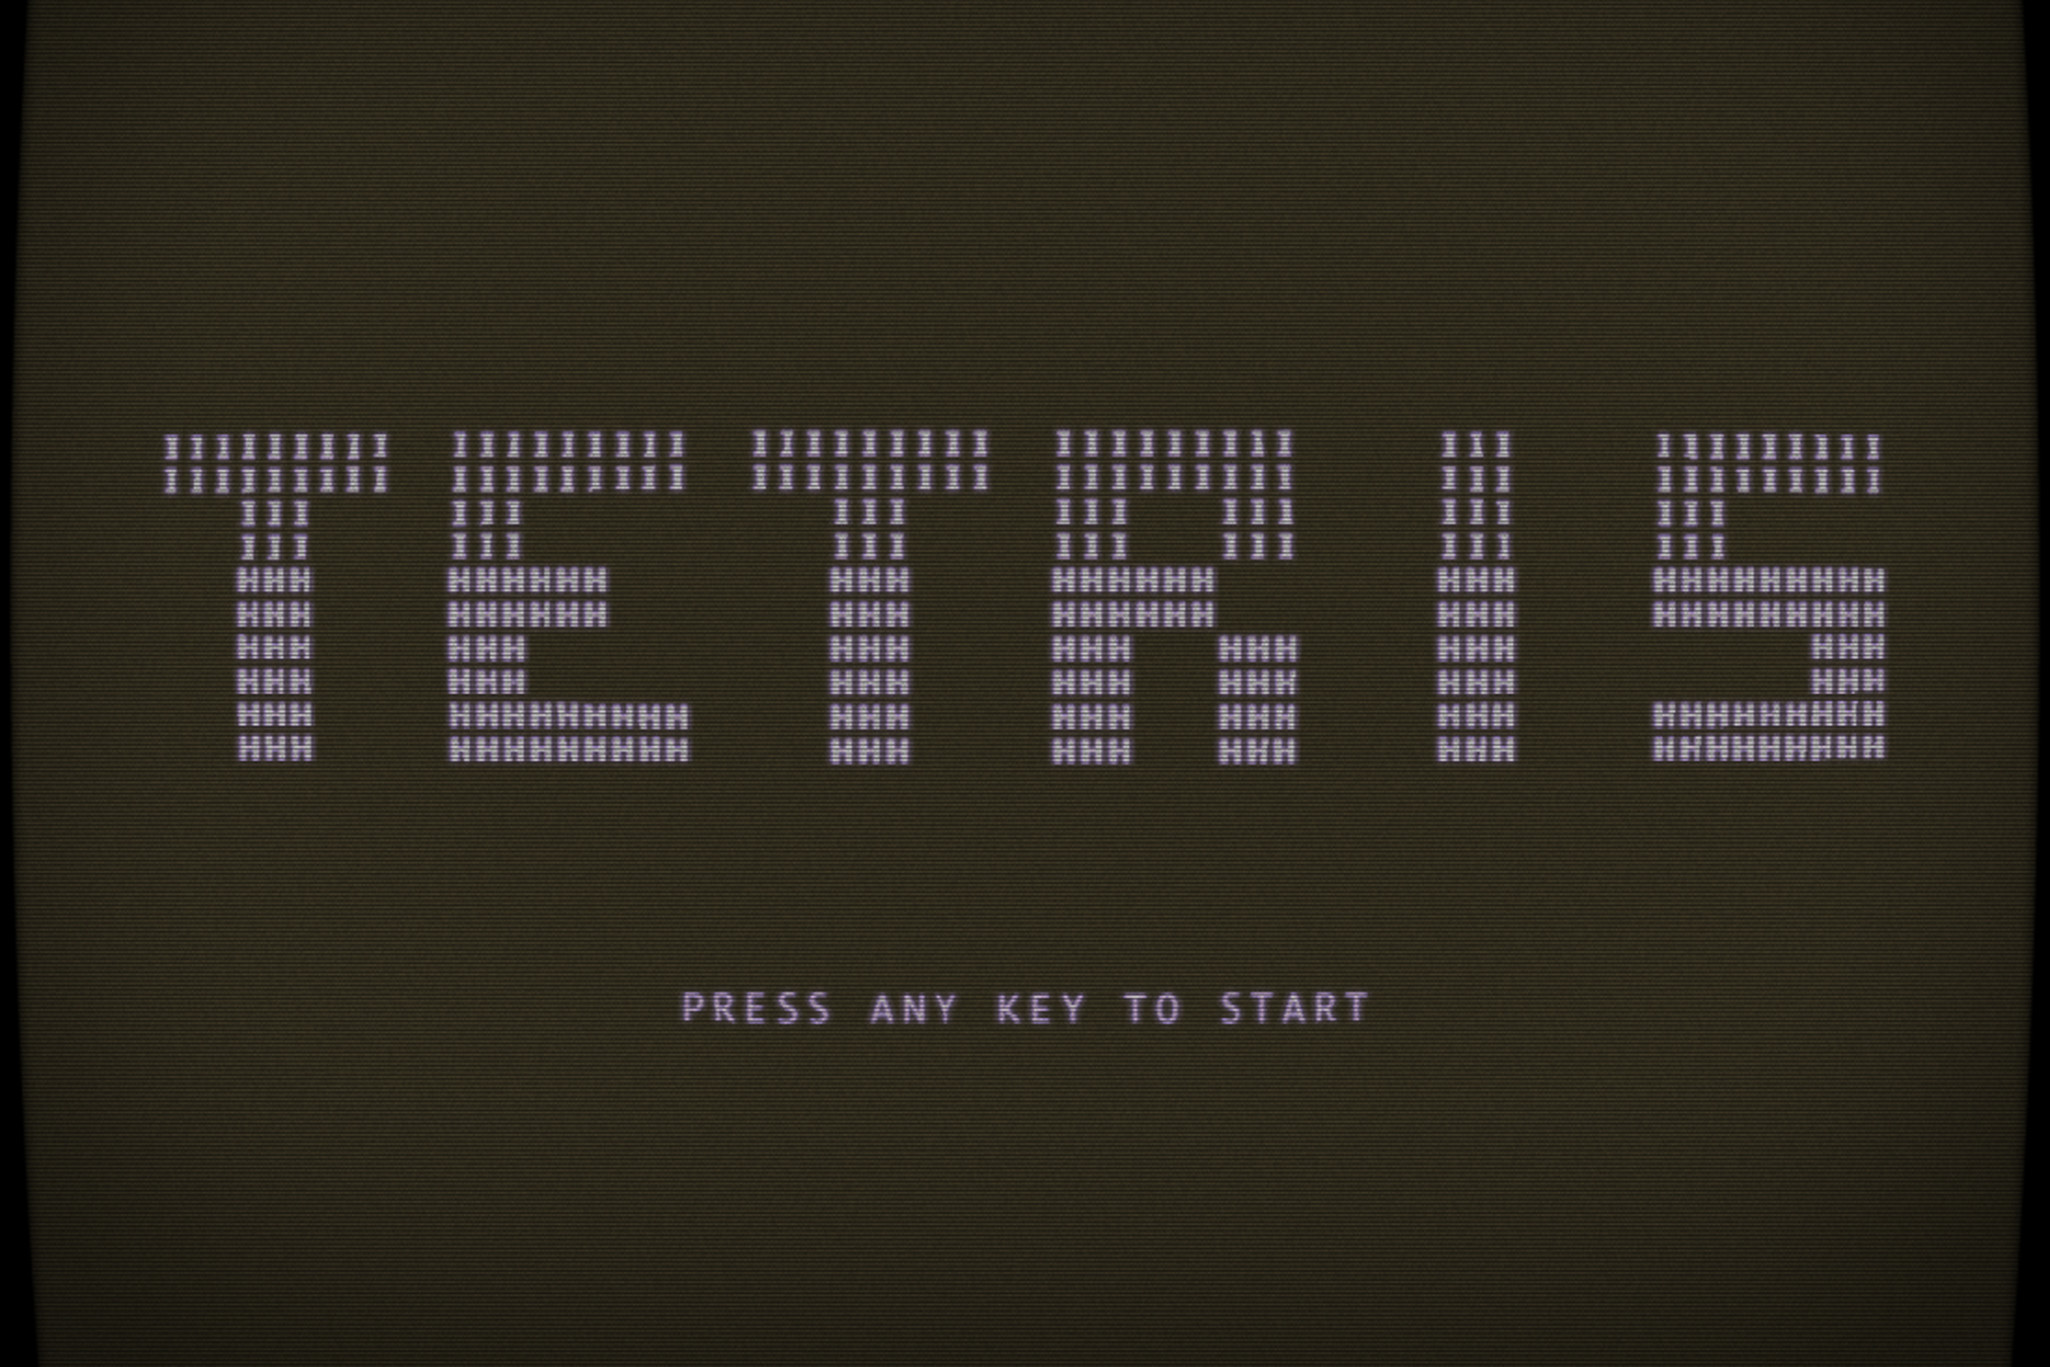 Watch 'Tetris' evolve over 30 years | The Verge